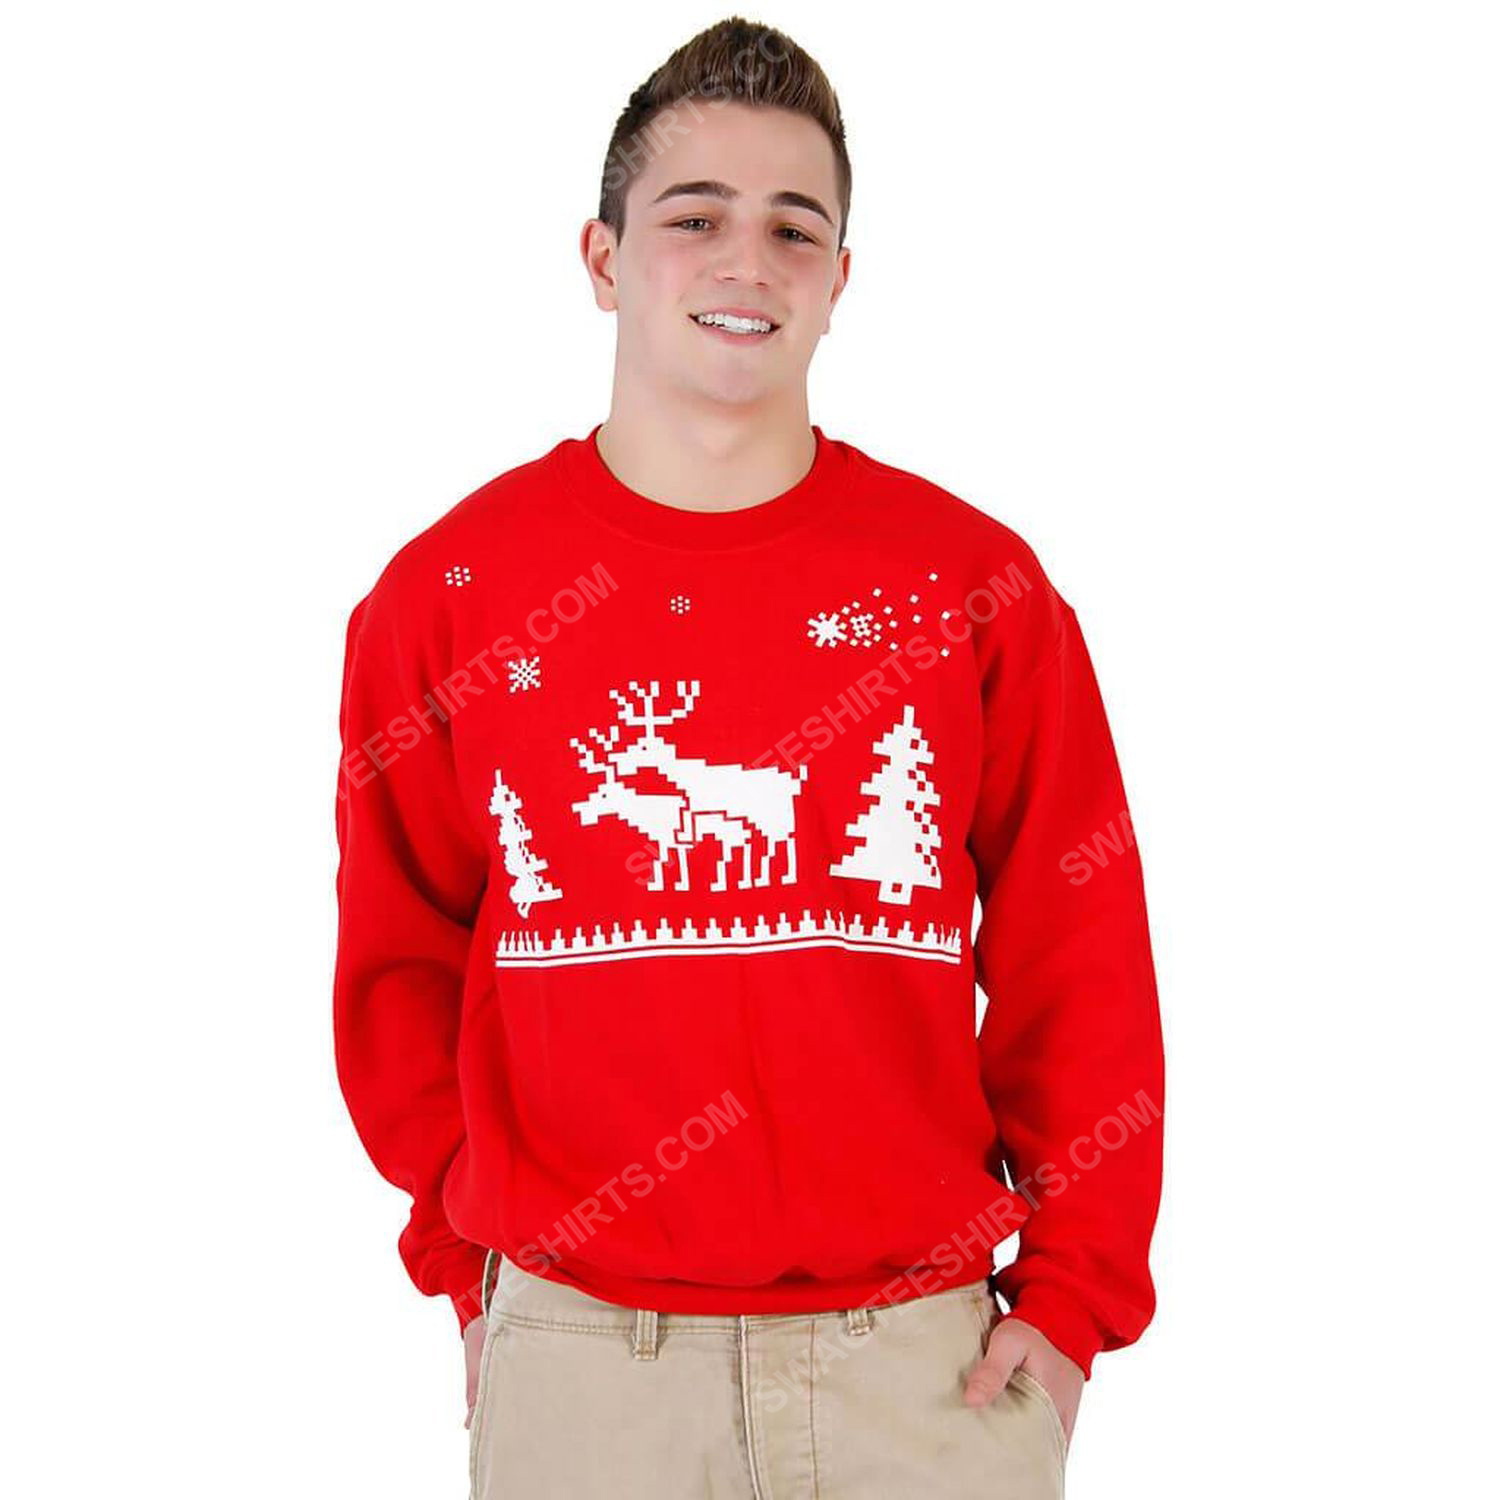 Humping reindeer full print ugly christmas sweater 2 - Copy (2)